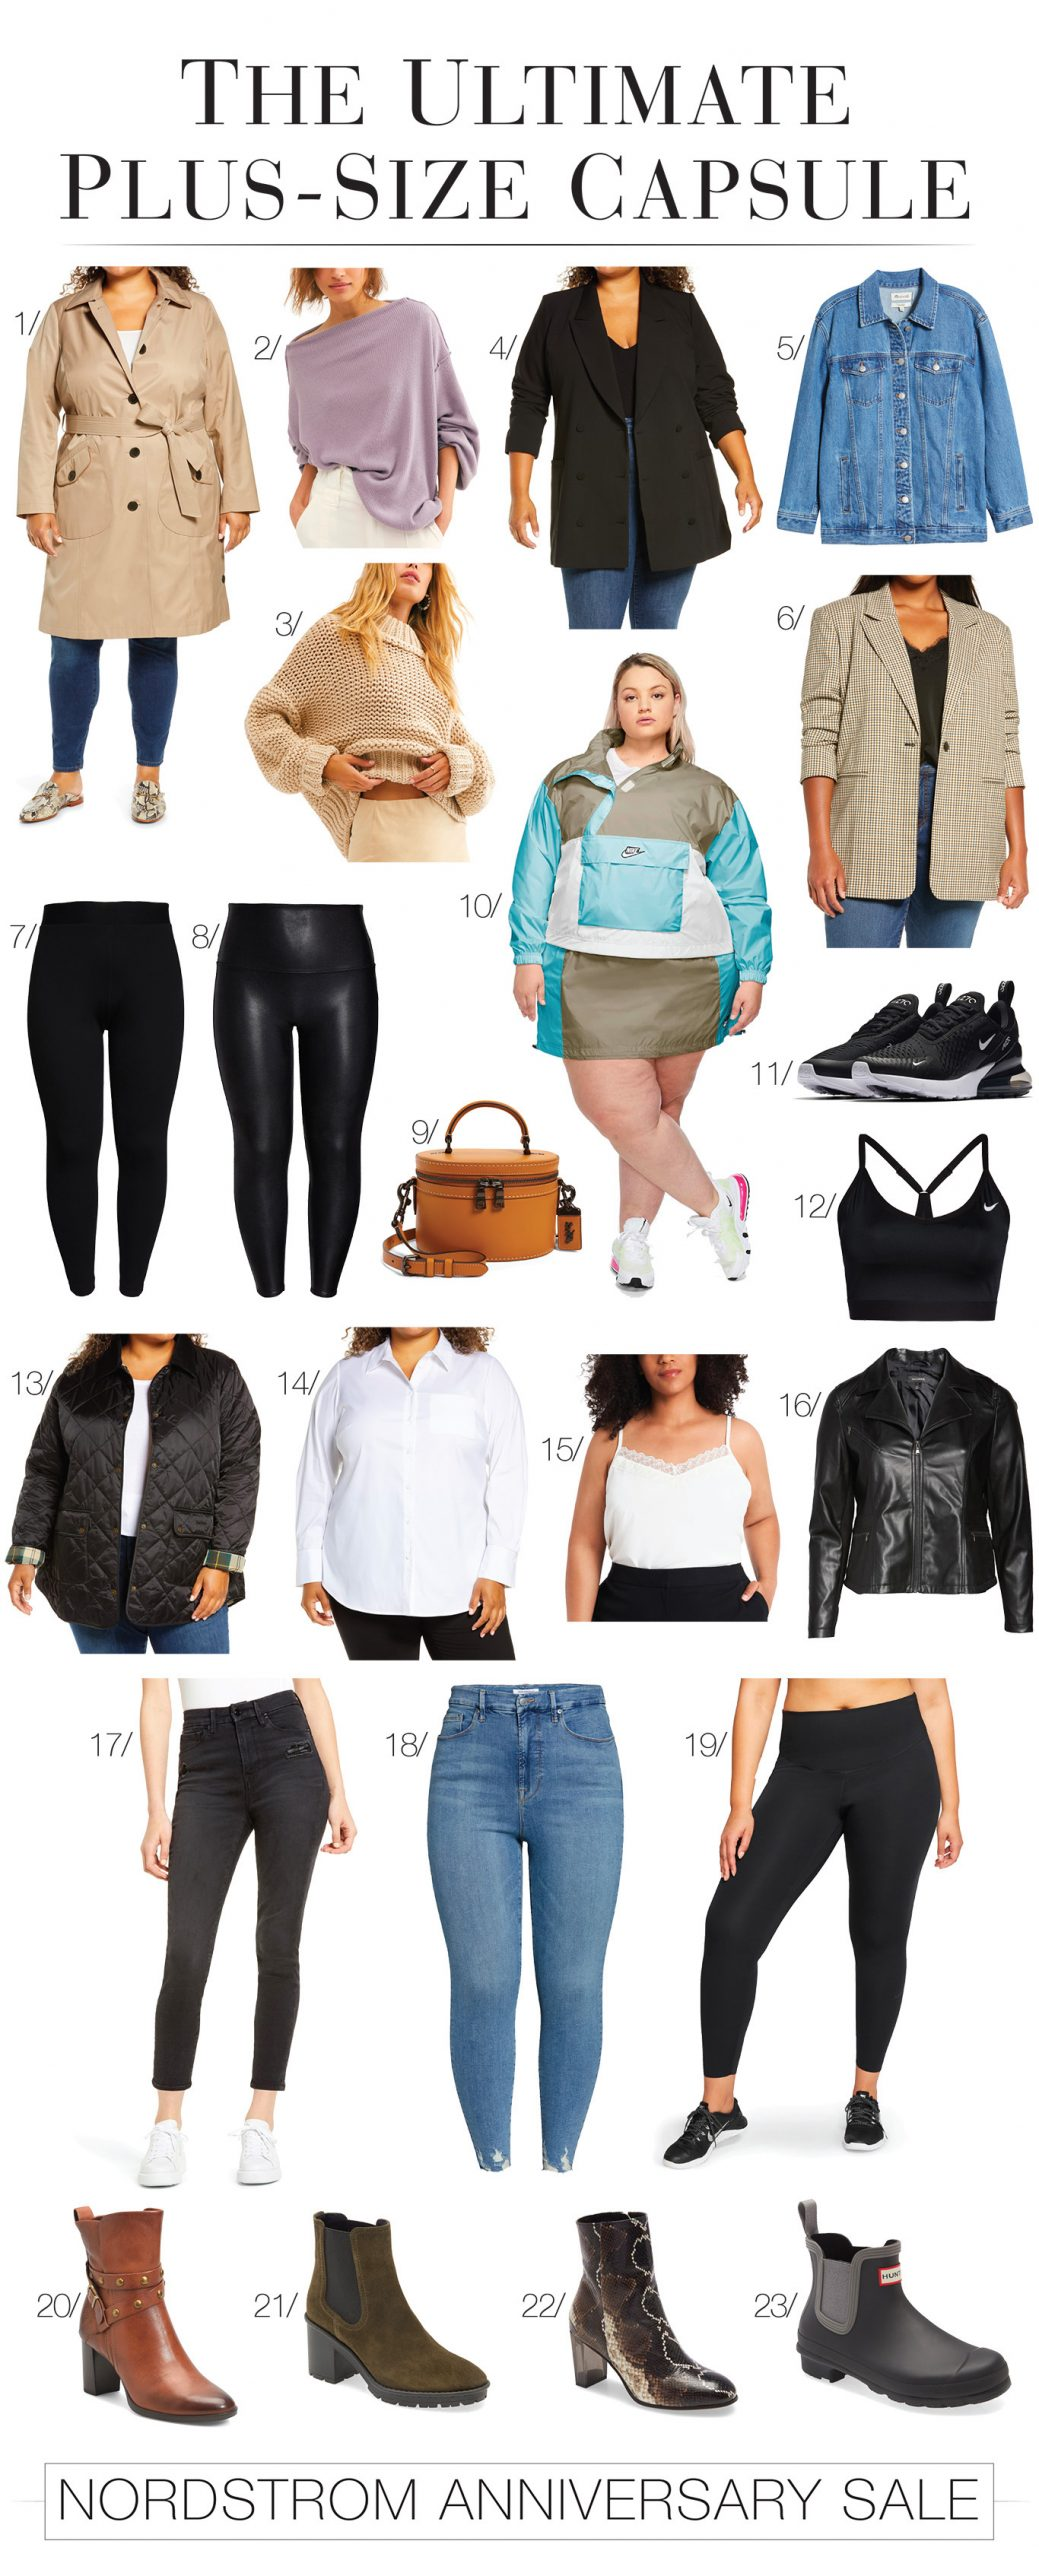 The Nordstrom Anniversary Sale is on point w/ plus-size picks. A casual-chic capsule wardrobe w/ athletic-wear, jeans, jackets & shoes. Woot!